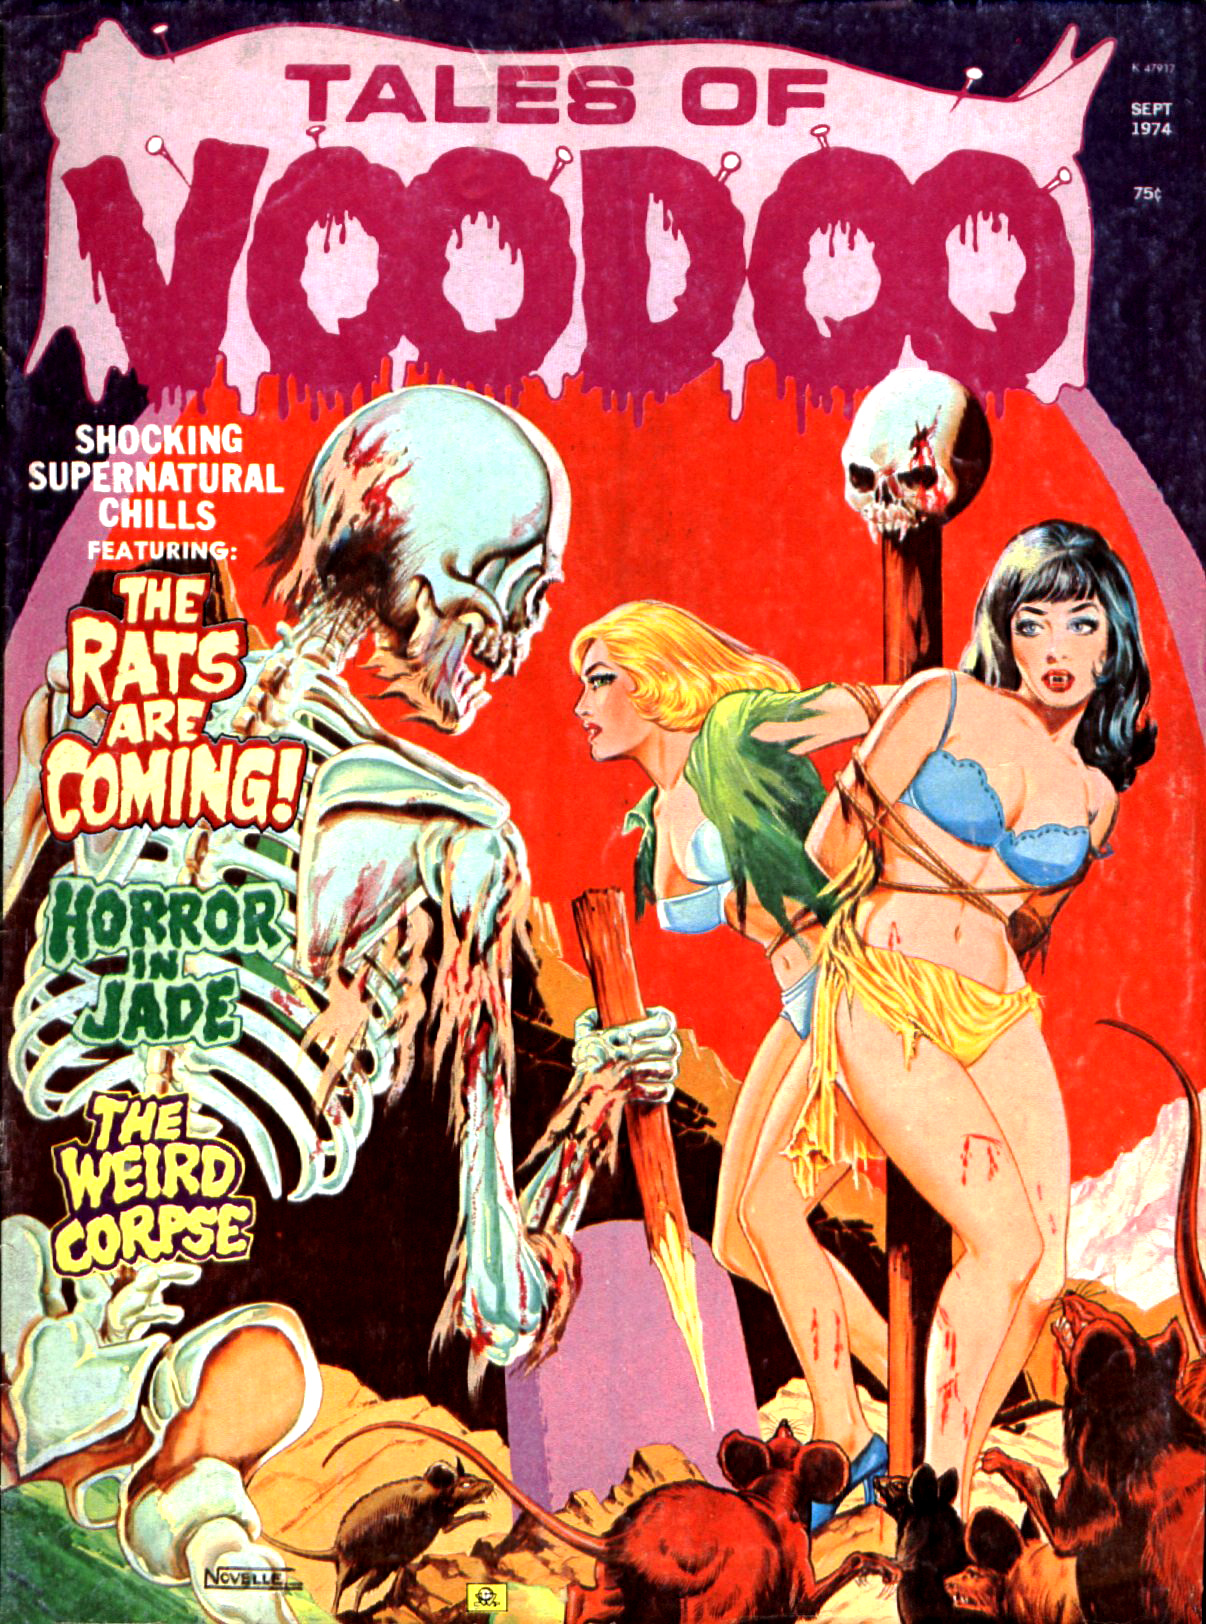 Tales of Voodoo Vol. 7 #5 (Eerie Publications 1974